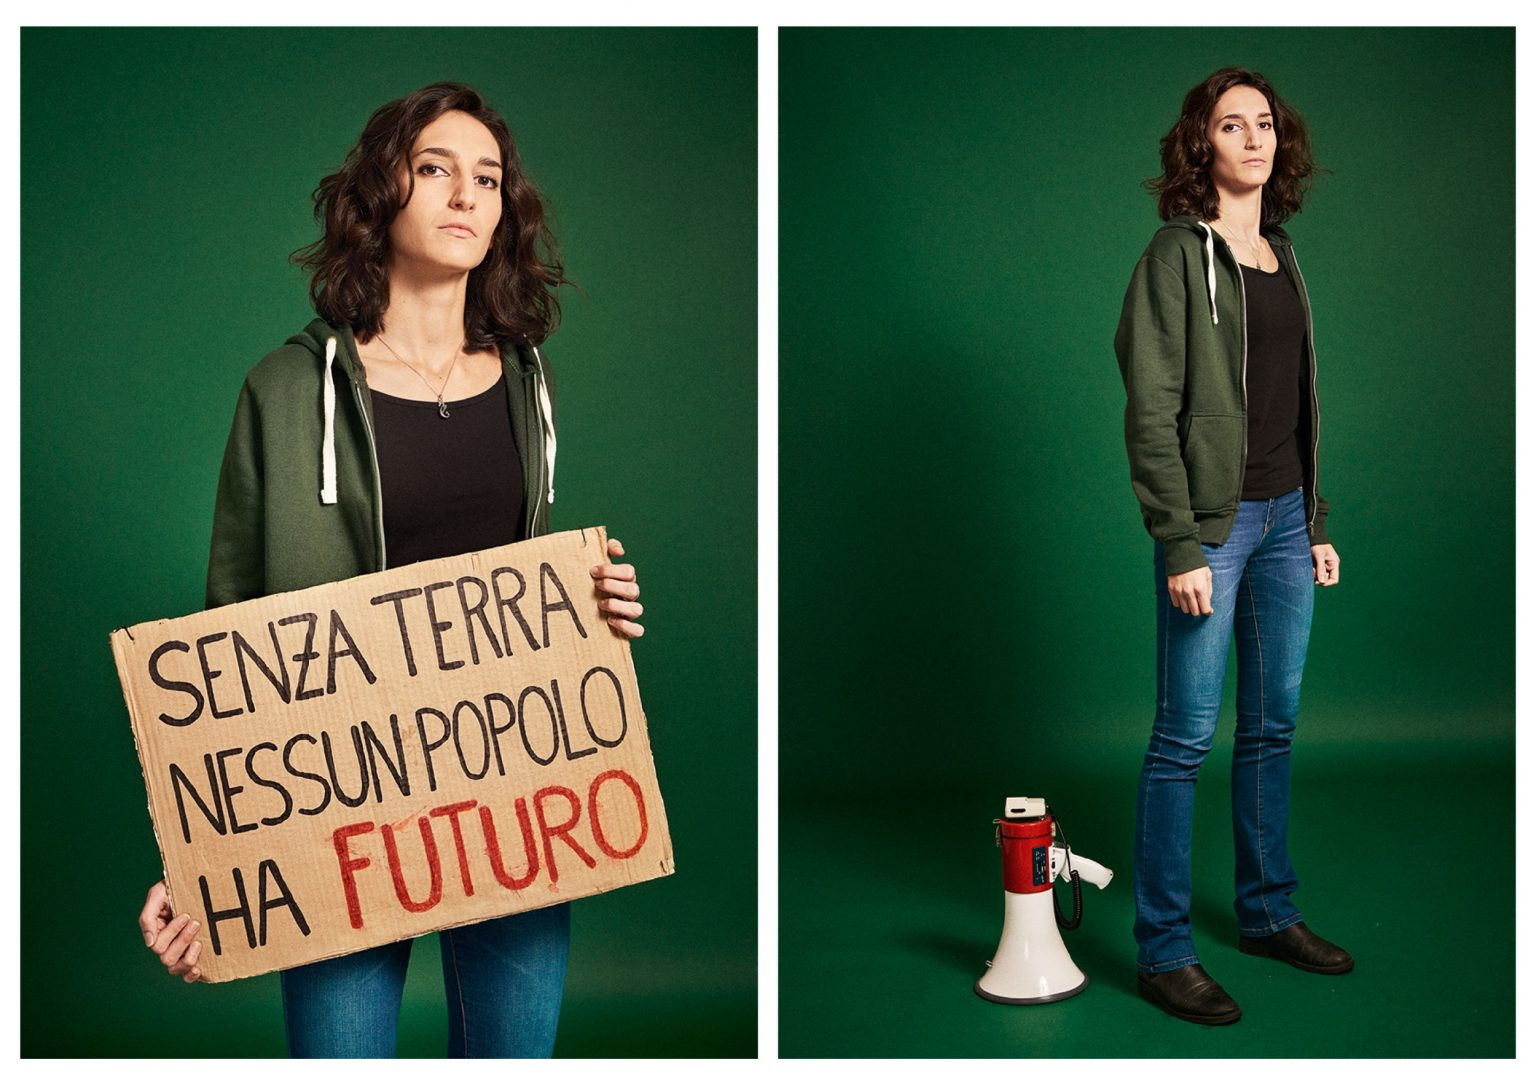 Marianna Panzarino launched Fridays for Future Bari and was among the activists of the first national coordination. In September 2019, she followed the process to make climate emergency be declared in the city of Rome, pushing the Municipality to adopt the motion unanimously. Marianna is a 24 year old law student at La Sapienza University, she dreams of becoming a magistrate, making her battle not only for the climate but also the battle against mafia. Rome, Italy, 2019